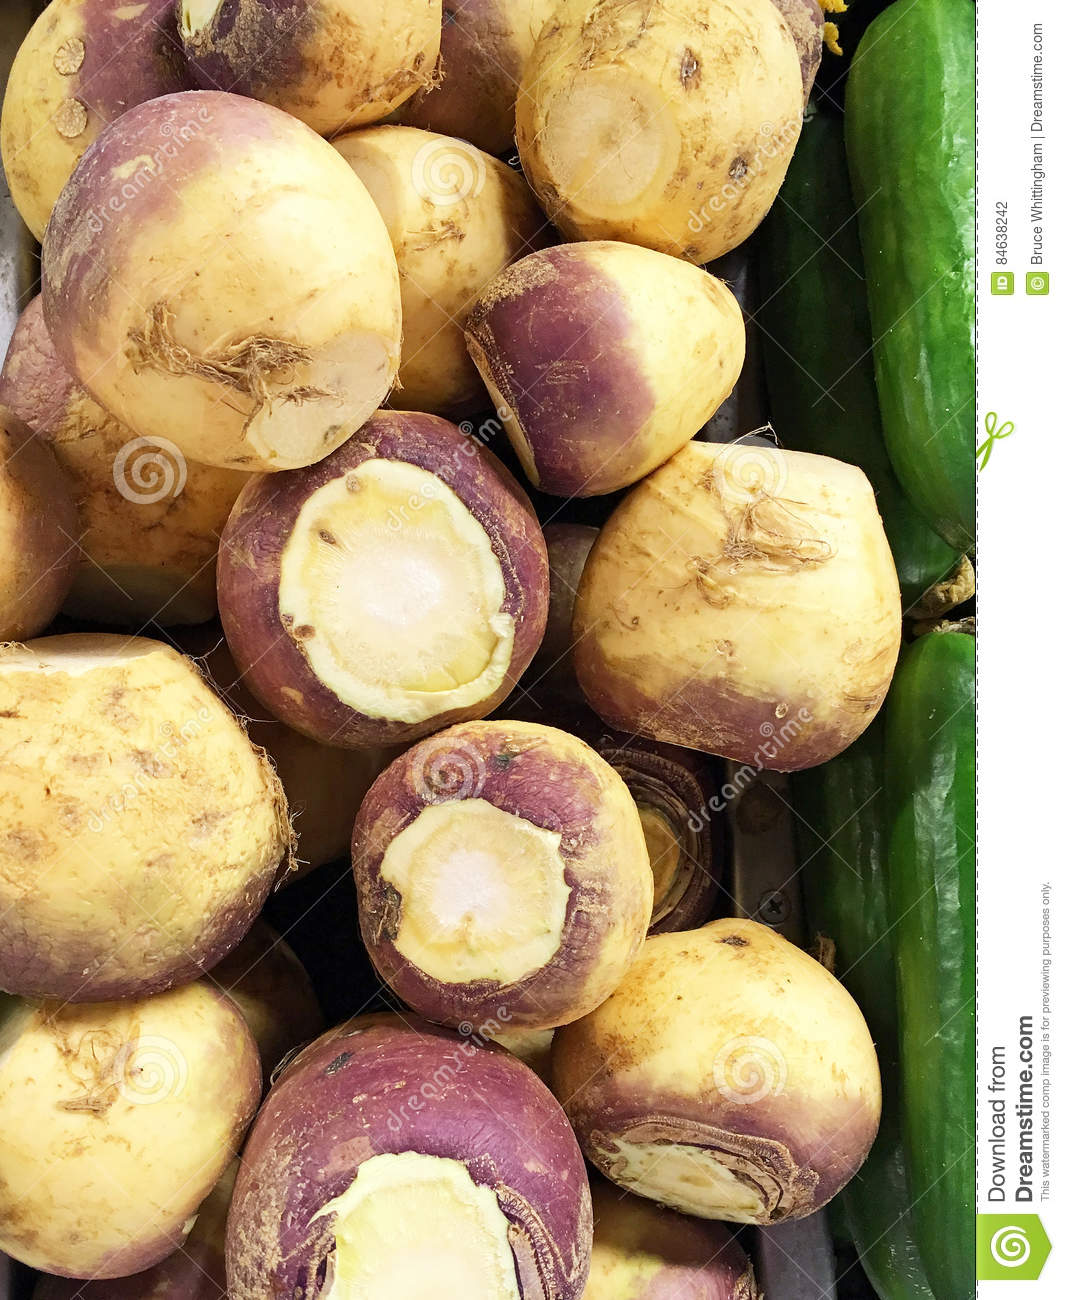 Swedish Turnips